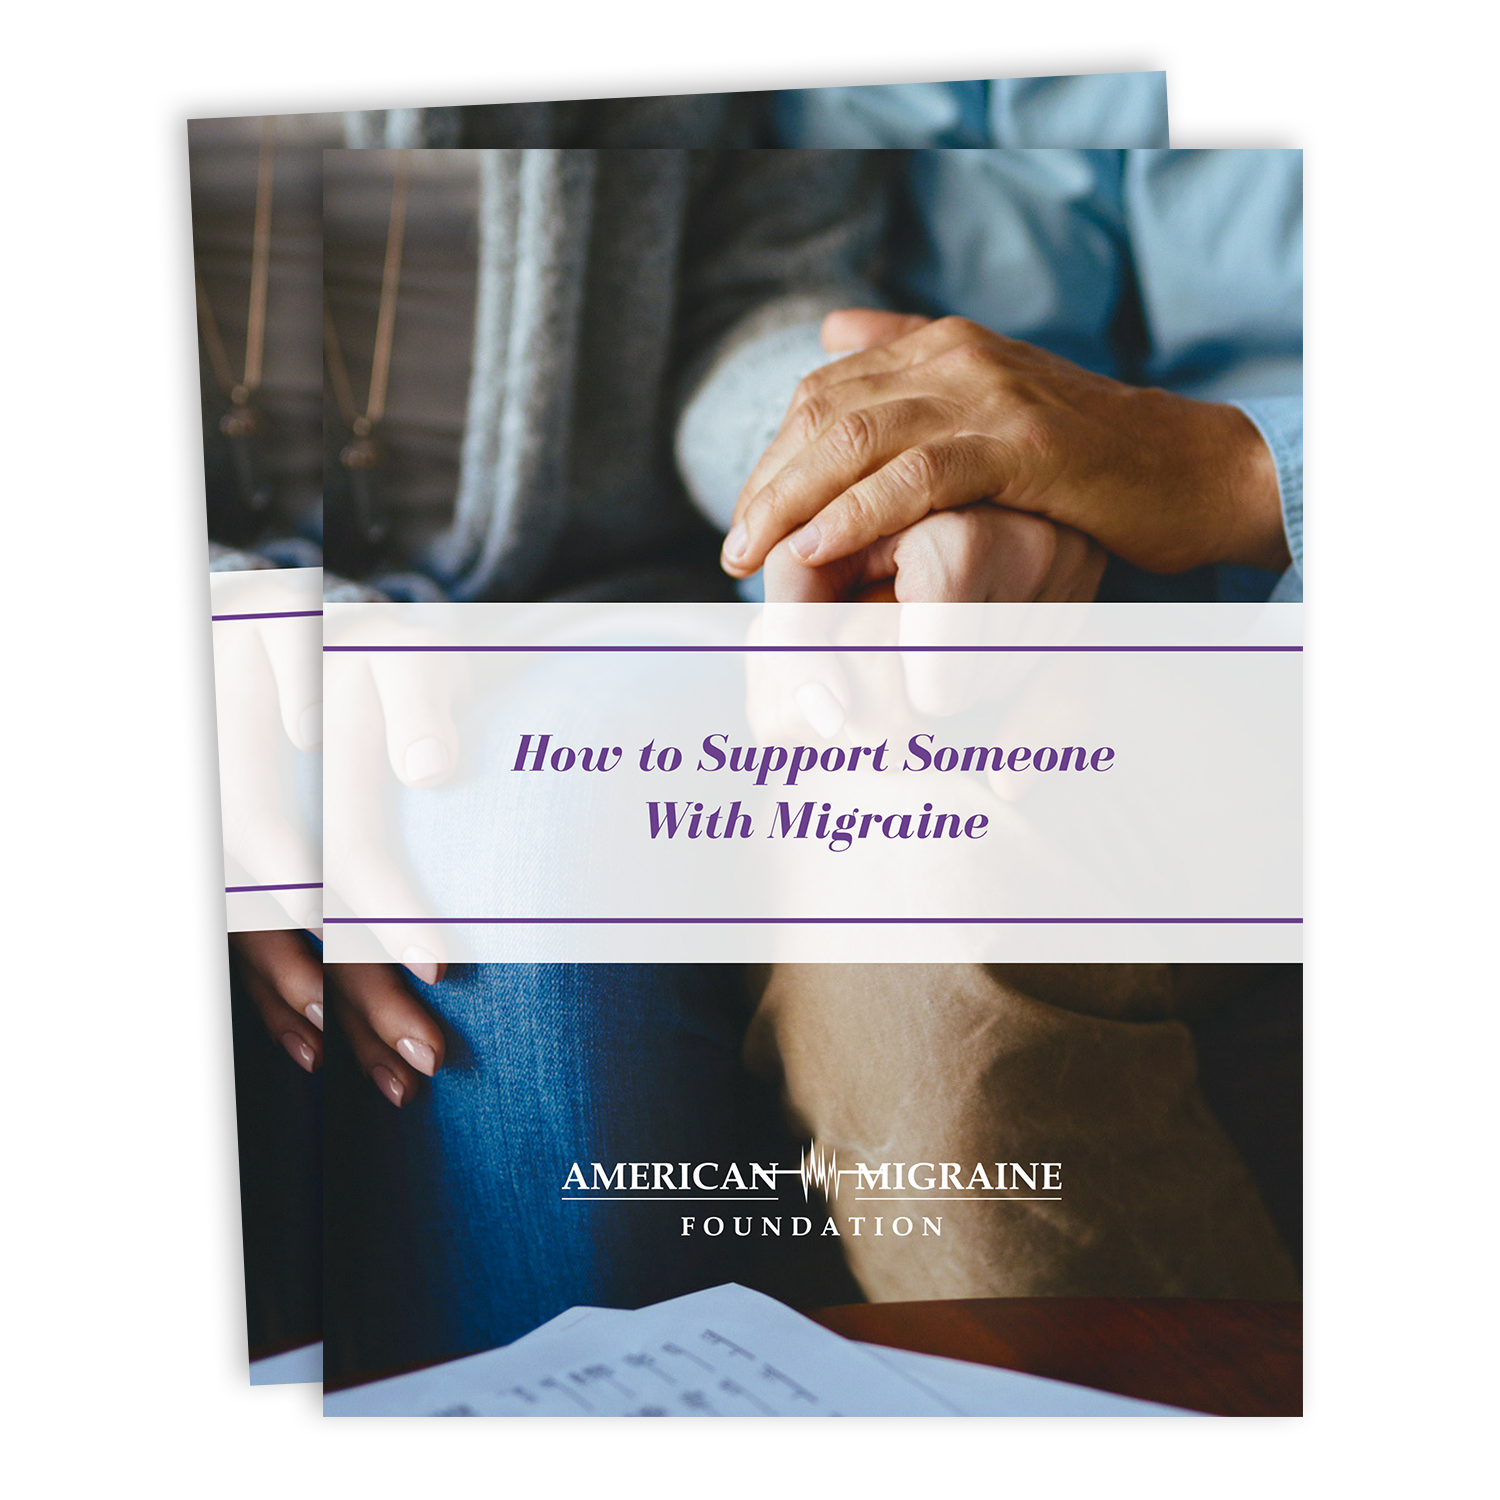 How to Support Someone with Migraine